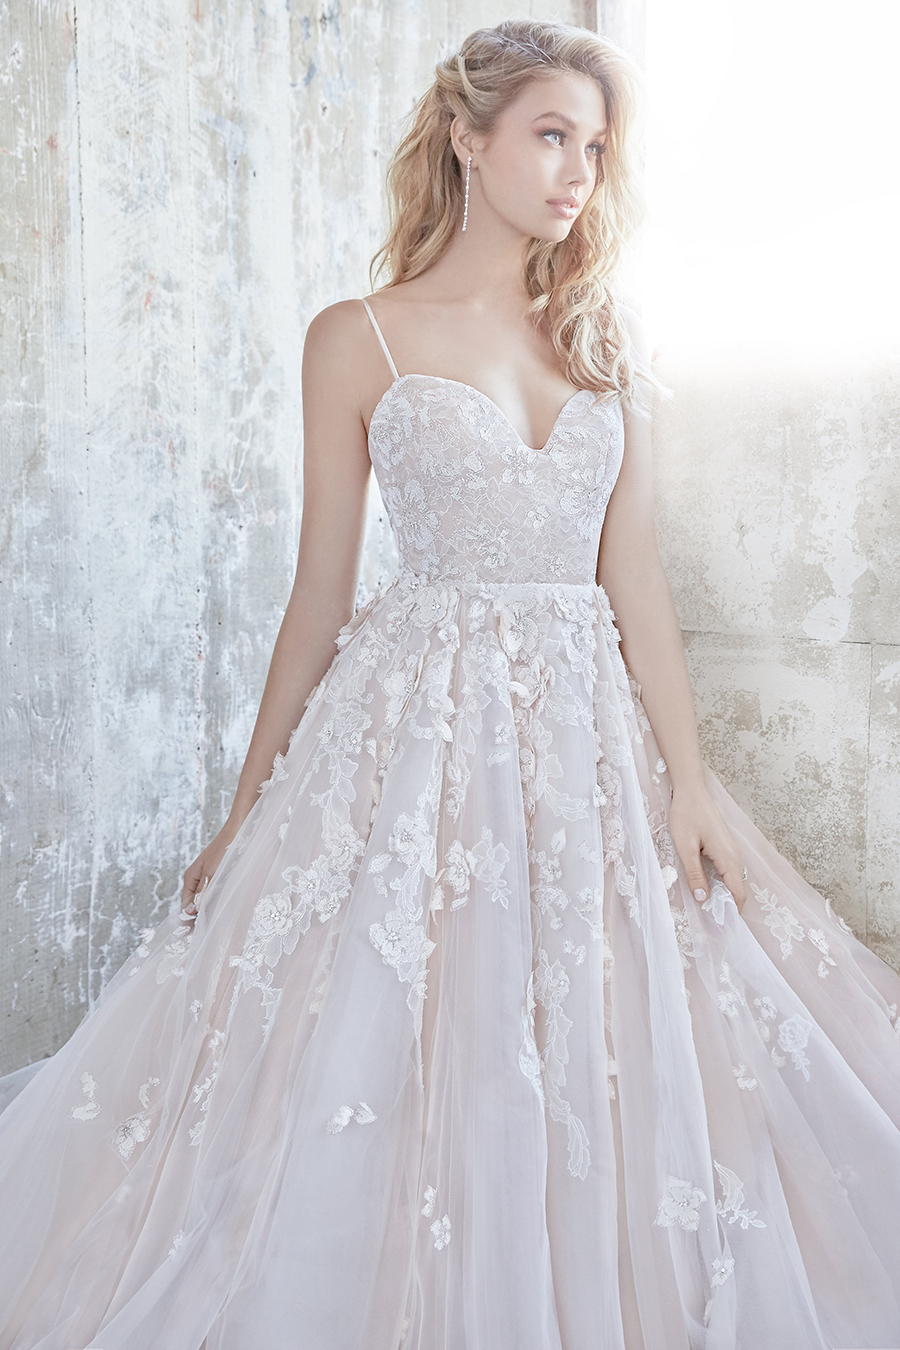 Hayley Paige Spring 2018 Arden Wedding Dress